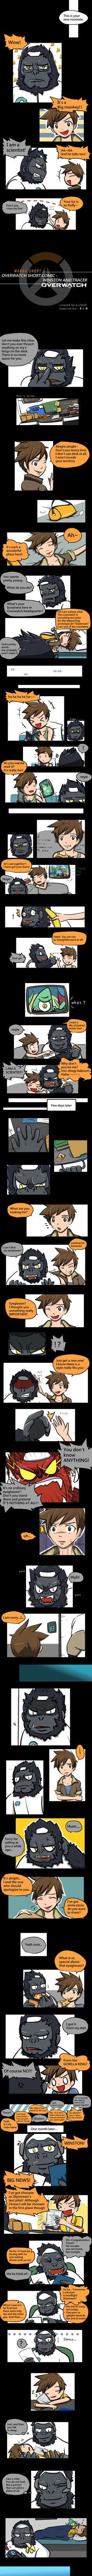 overwatch Comics #15 WINSTON AND TRACER Part1 by picketG